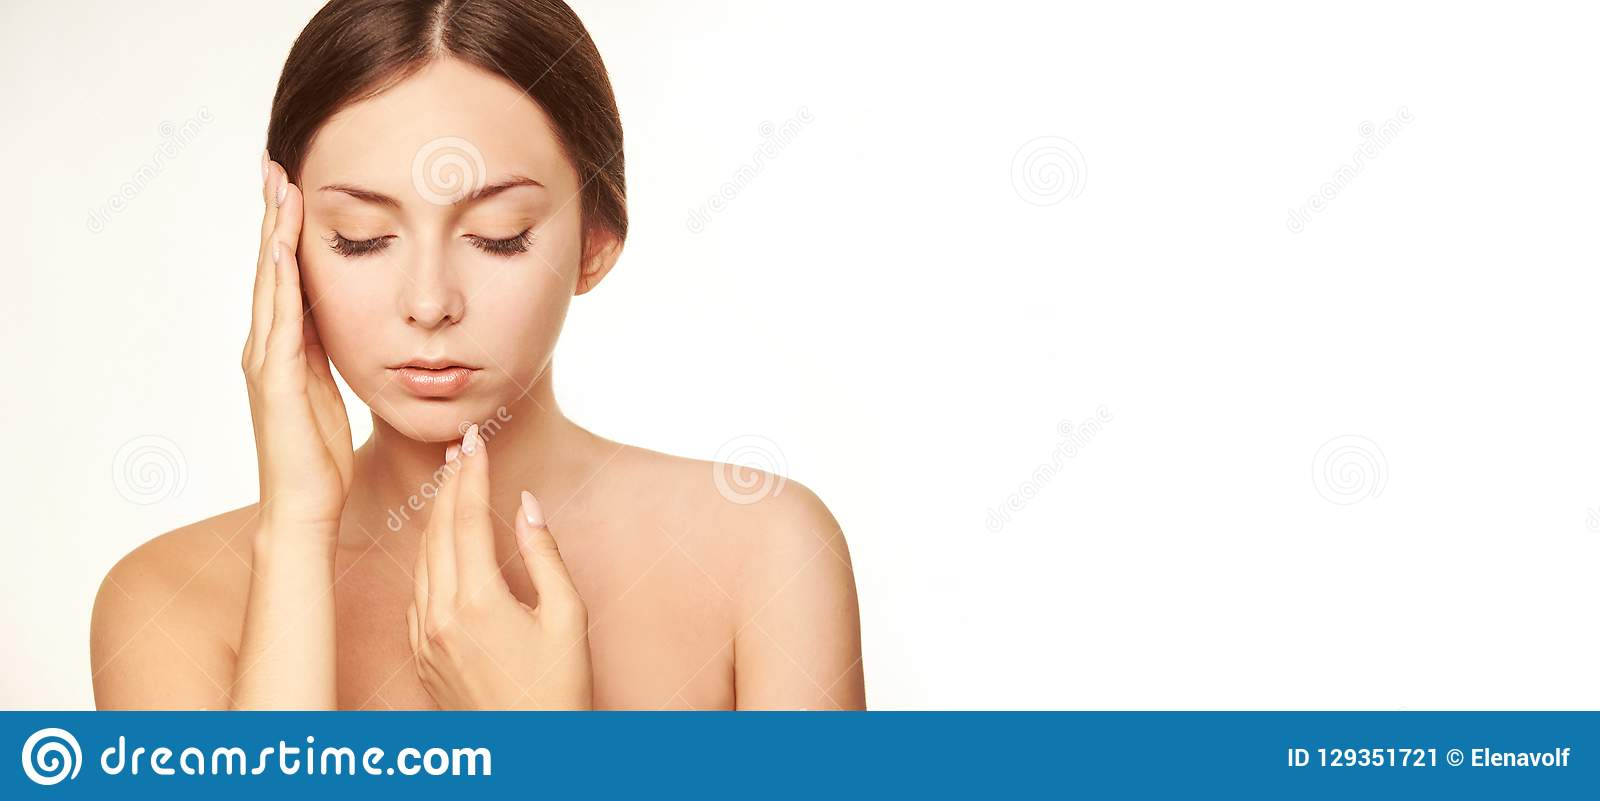 Healthy woman face. Young girl hand concept. Lotion cosmetics